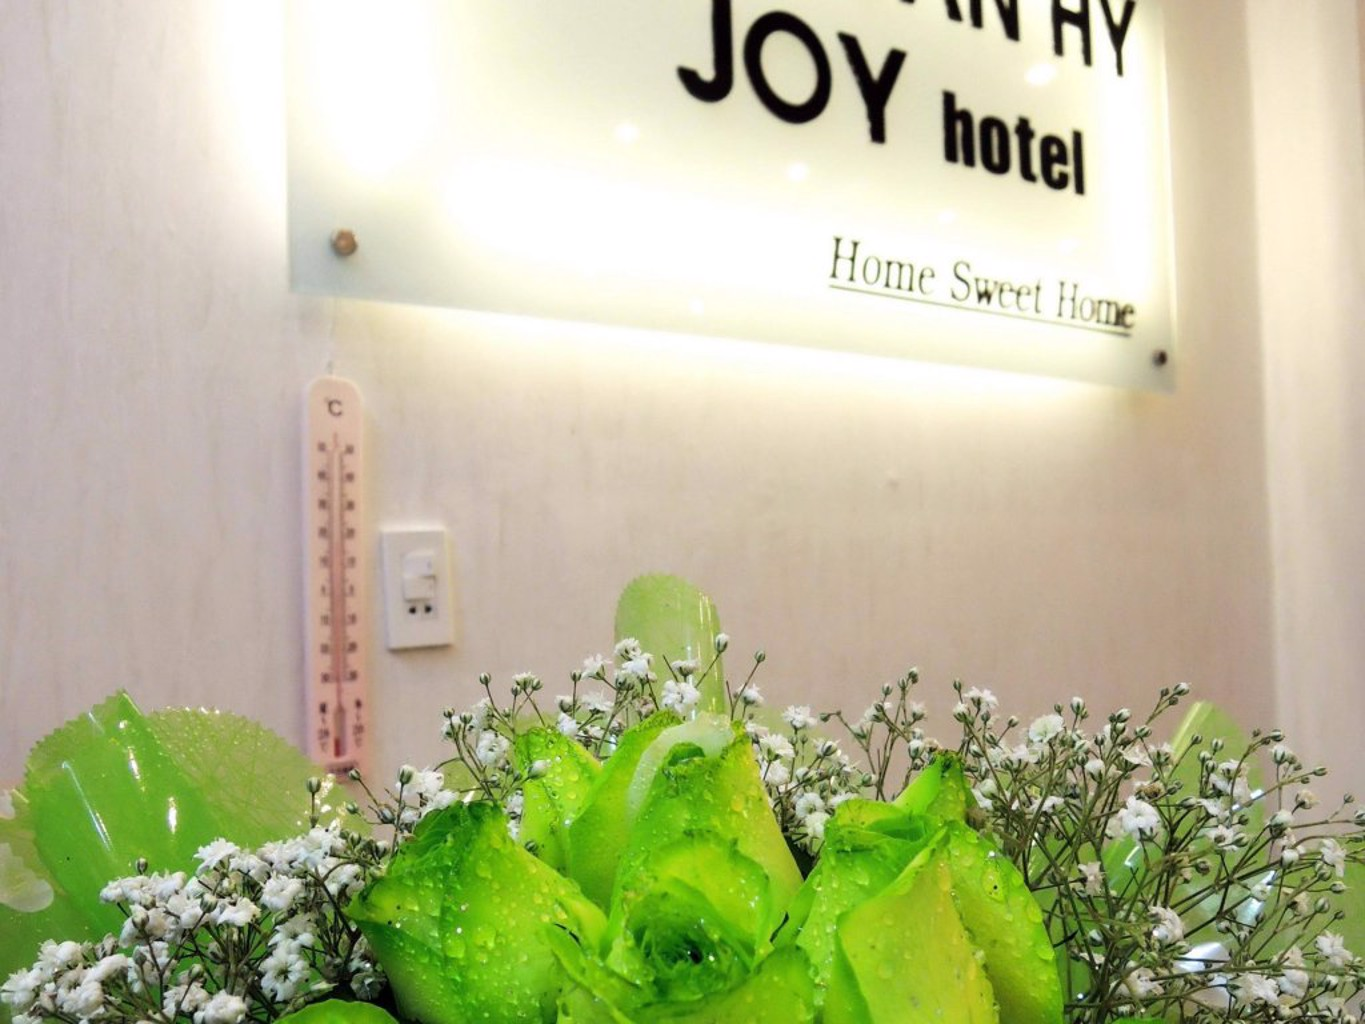 Gallery image of Hoan Hy Hotel